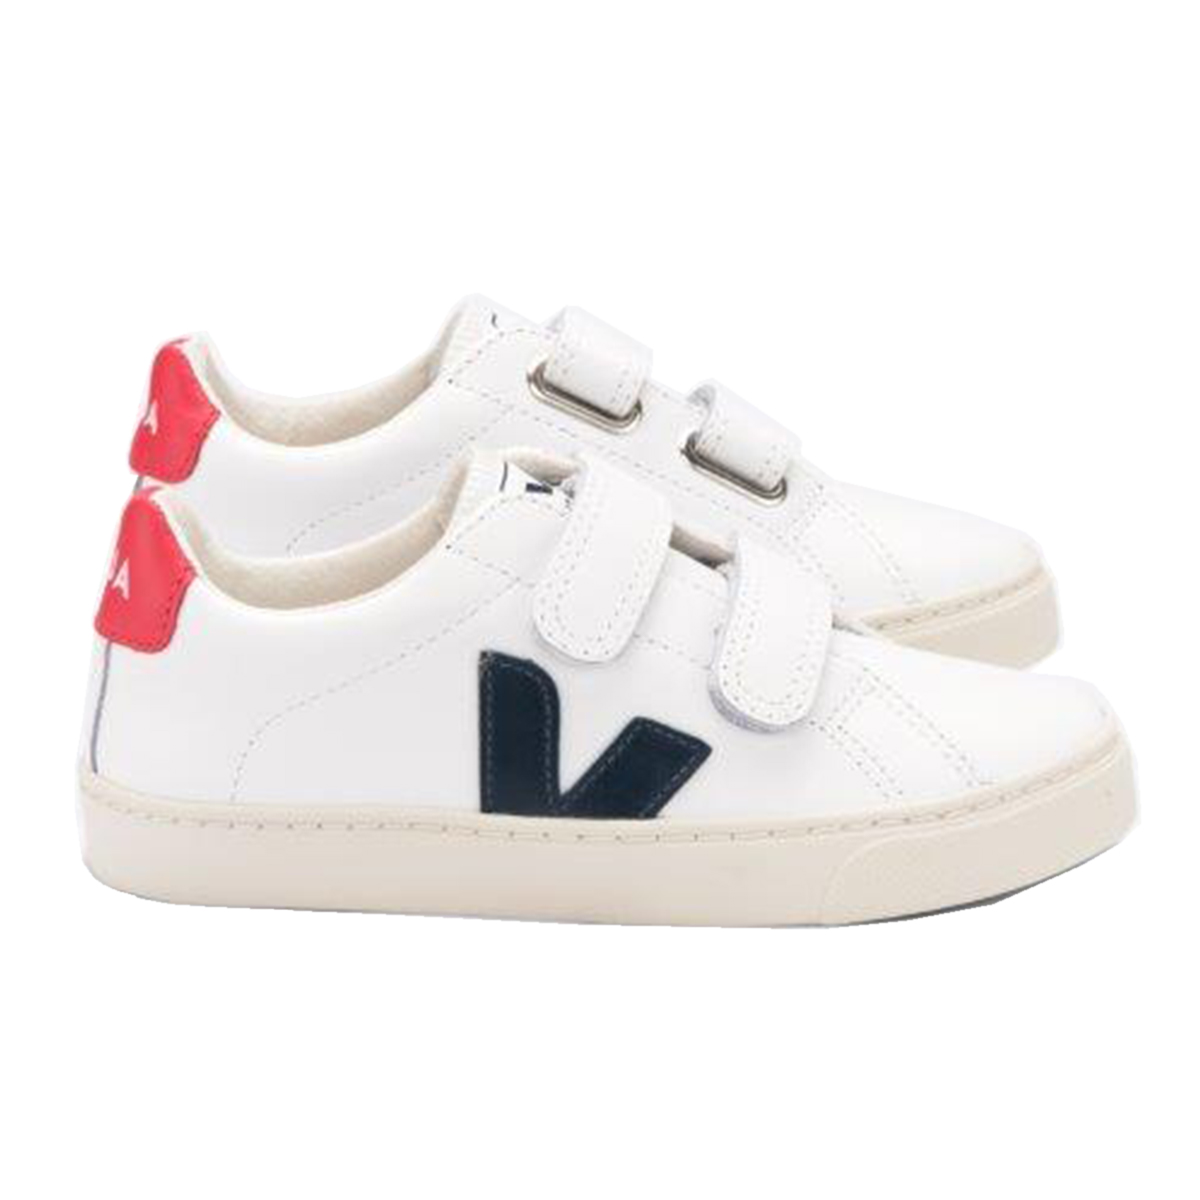 Veja Kid Small Esplar Velcro in Extra White Pekin